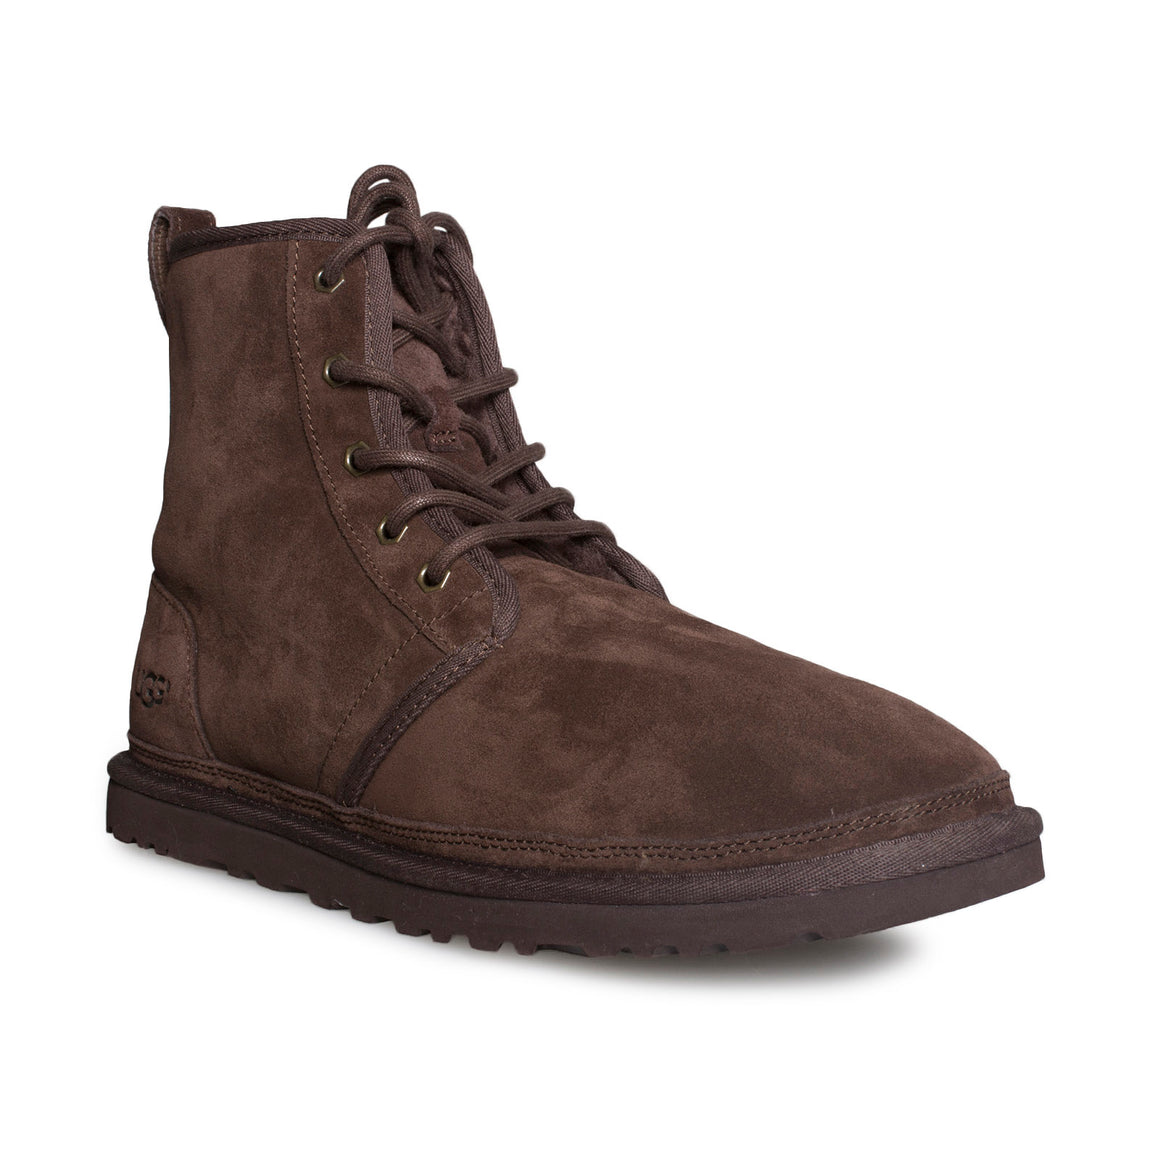 UGG Harkley Espresso Boots - Men's